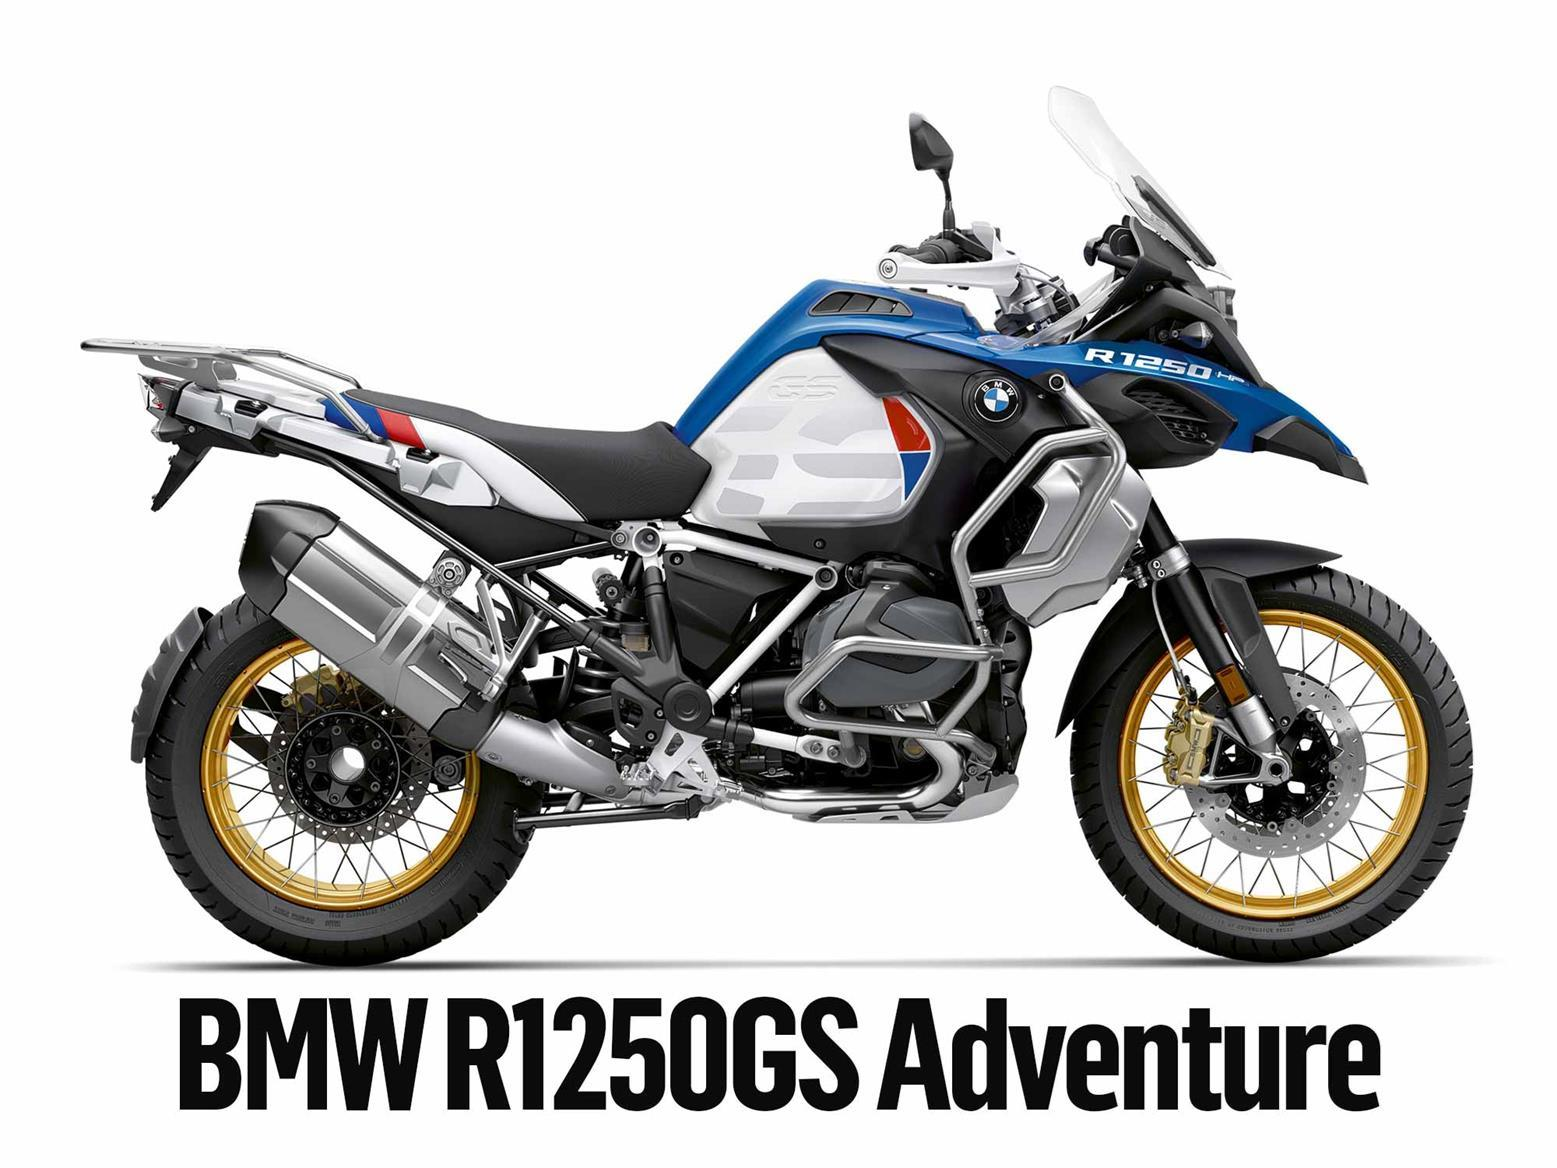 Read MCN's detailed BMW R1250GS Adventure long-term test here